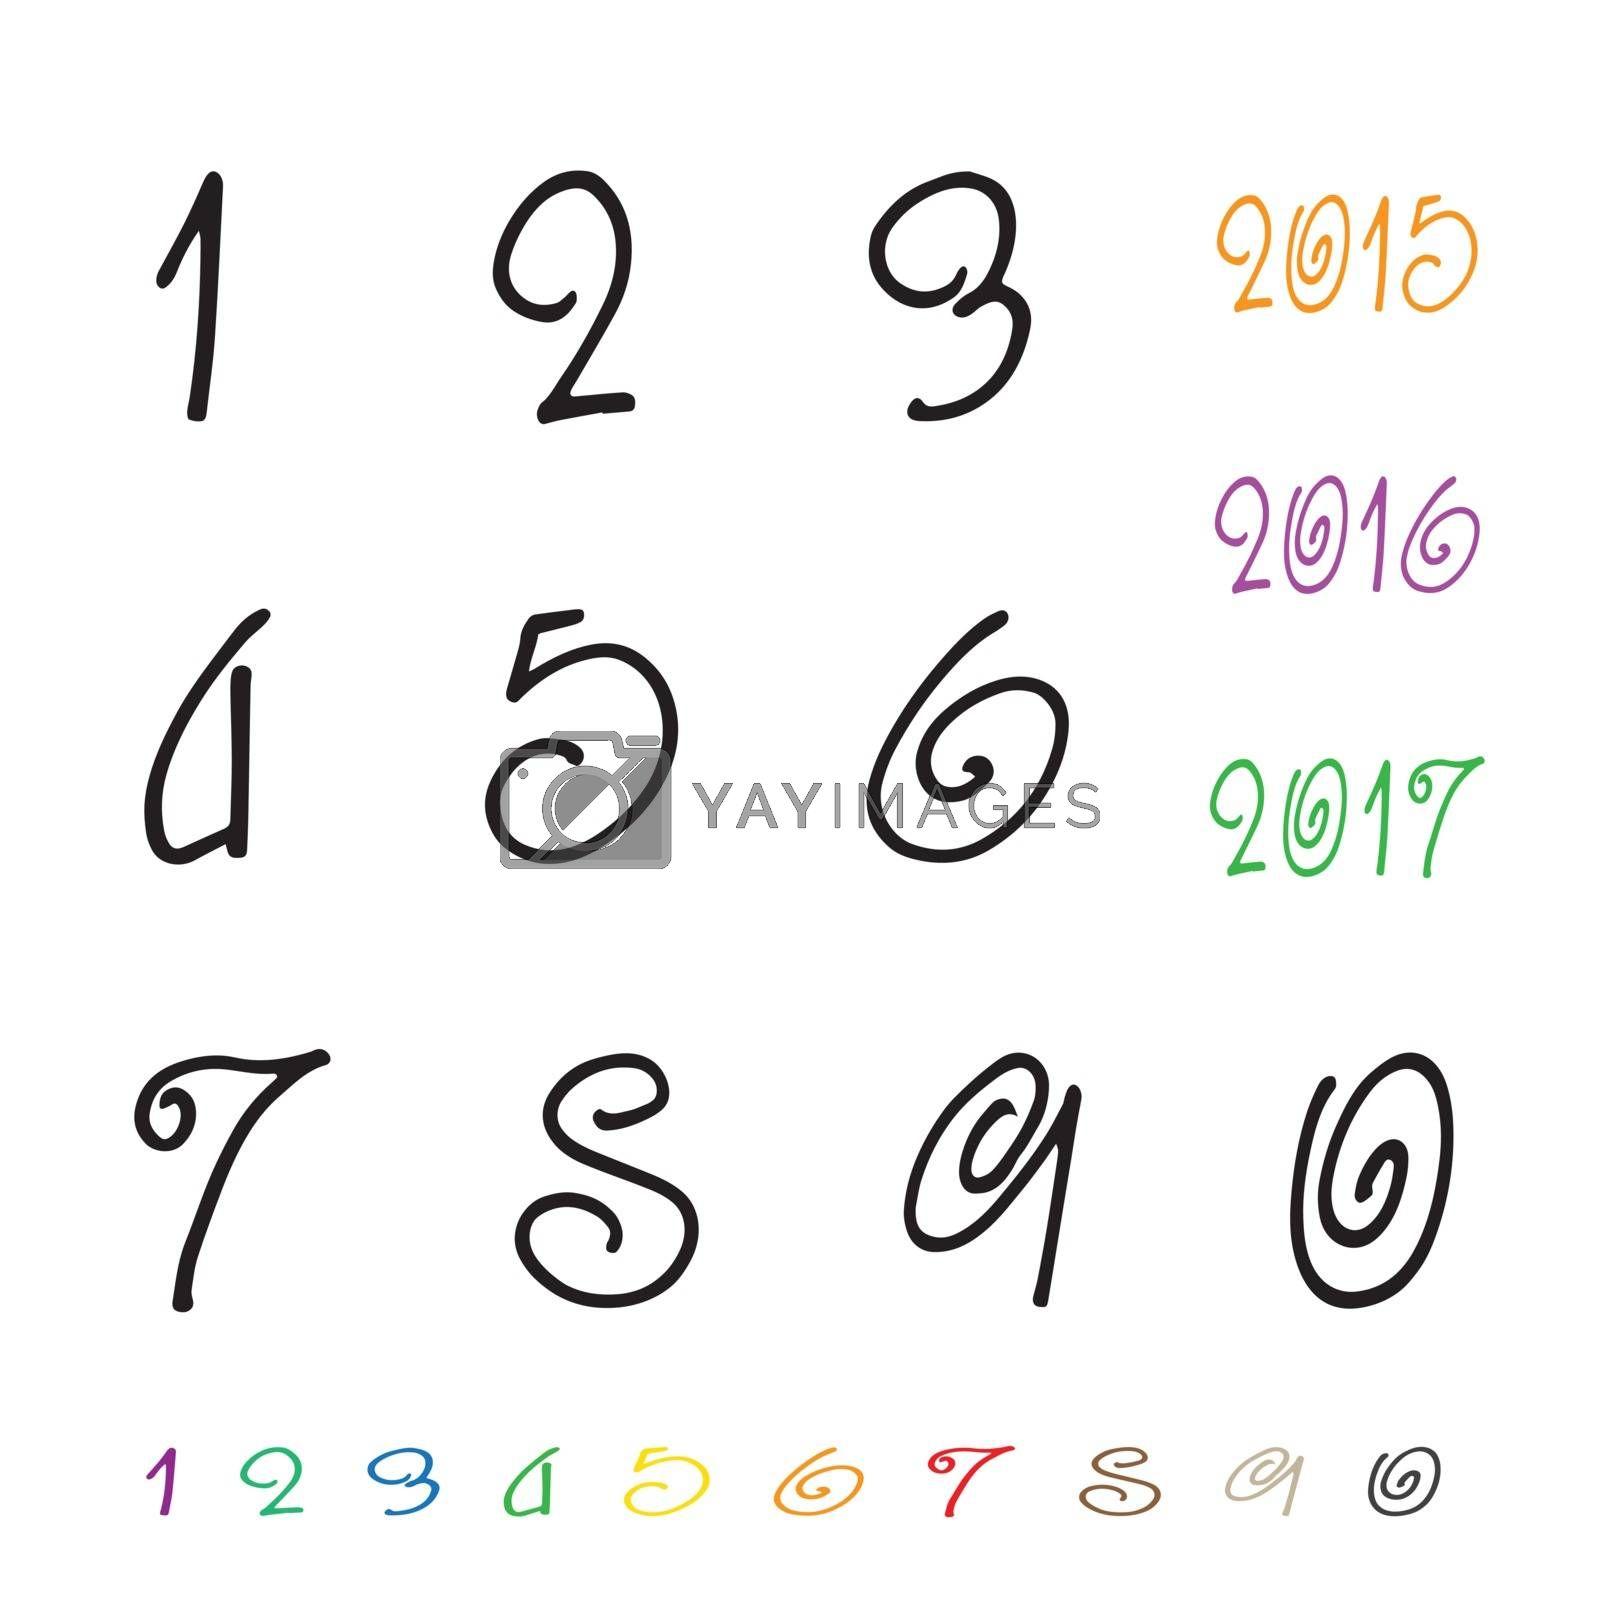 Royalty free image of Numbers 0-9 written with a brush on a white background by yod67